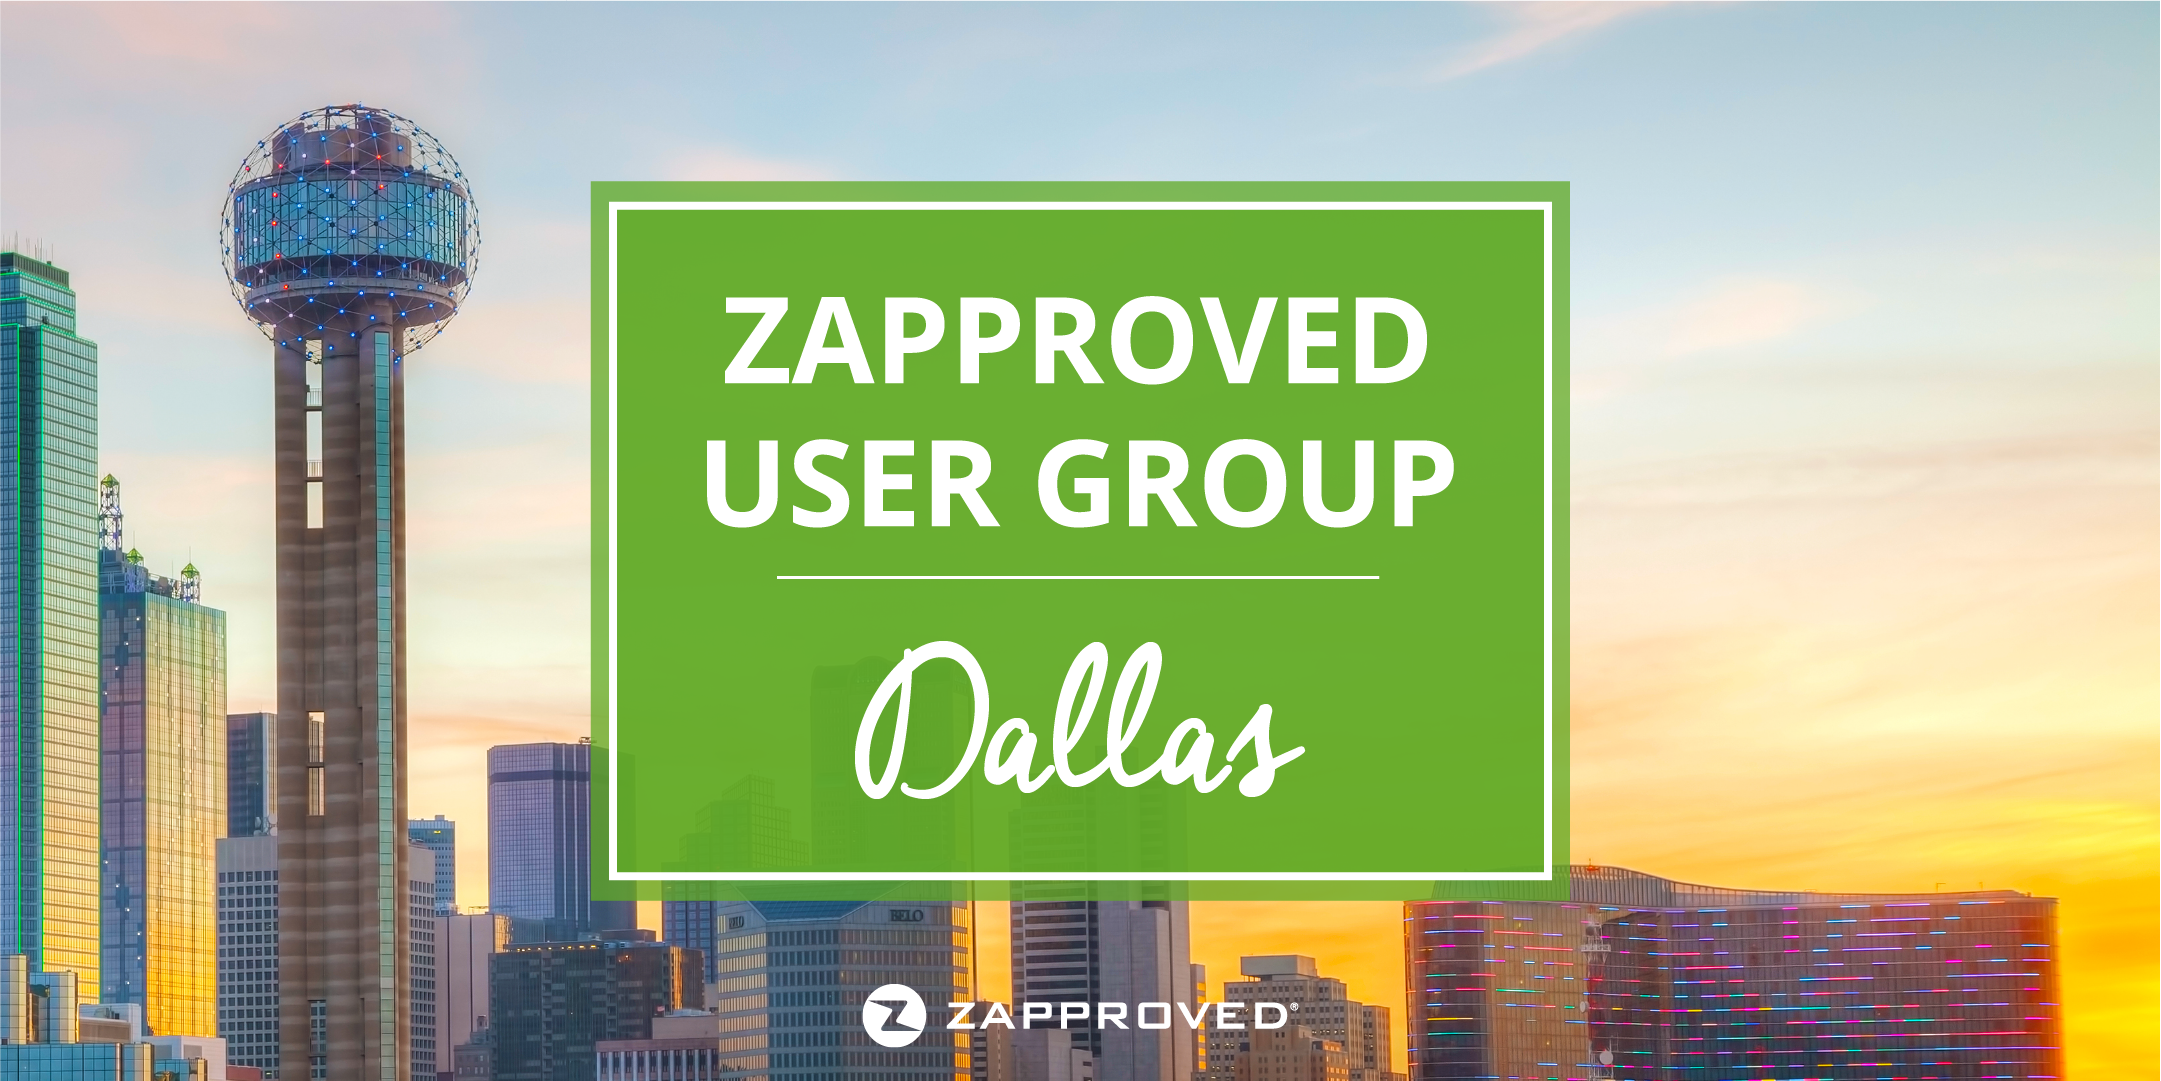 Zapproved User Group | March 2018 in Dallas